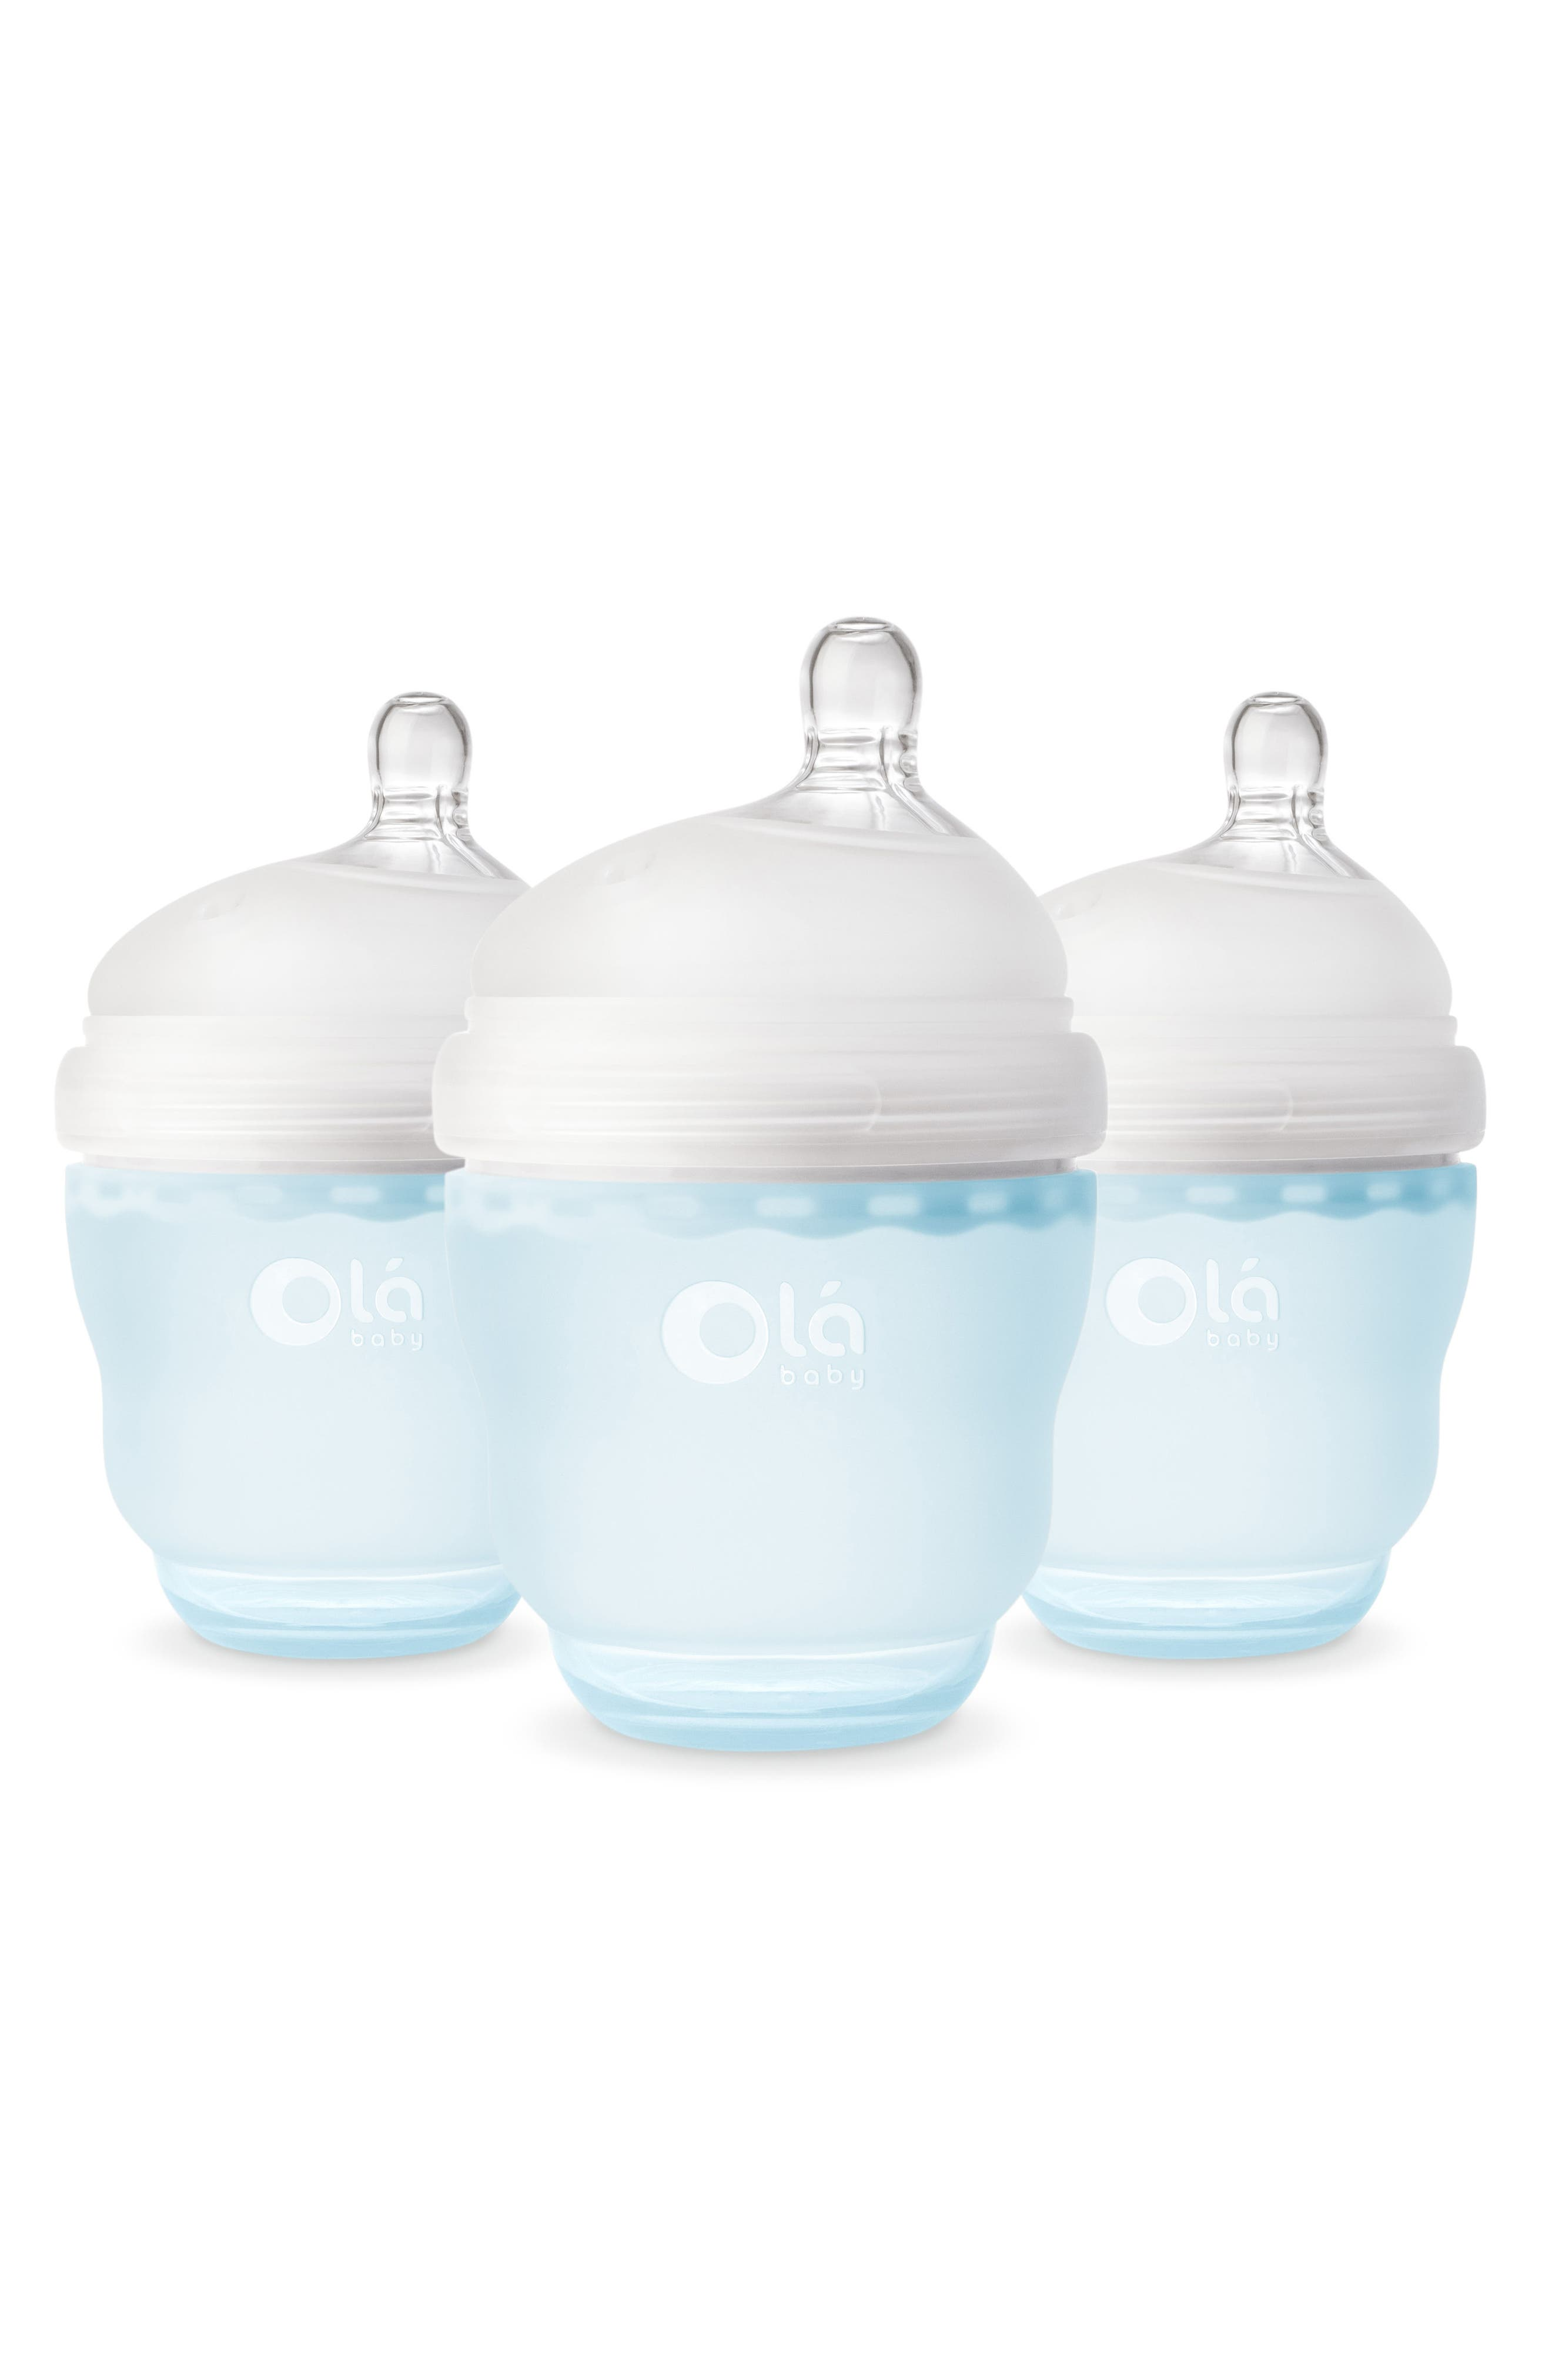 OLABABY, 3-Pack GentleBottle 4-Ounce Baby Bottles, Main thumbnail 1, color, SKY